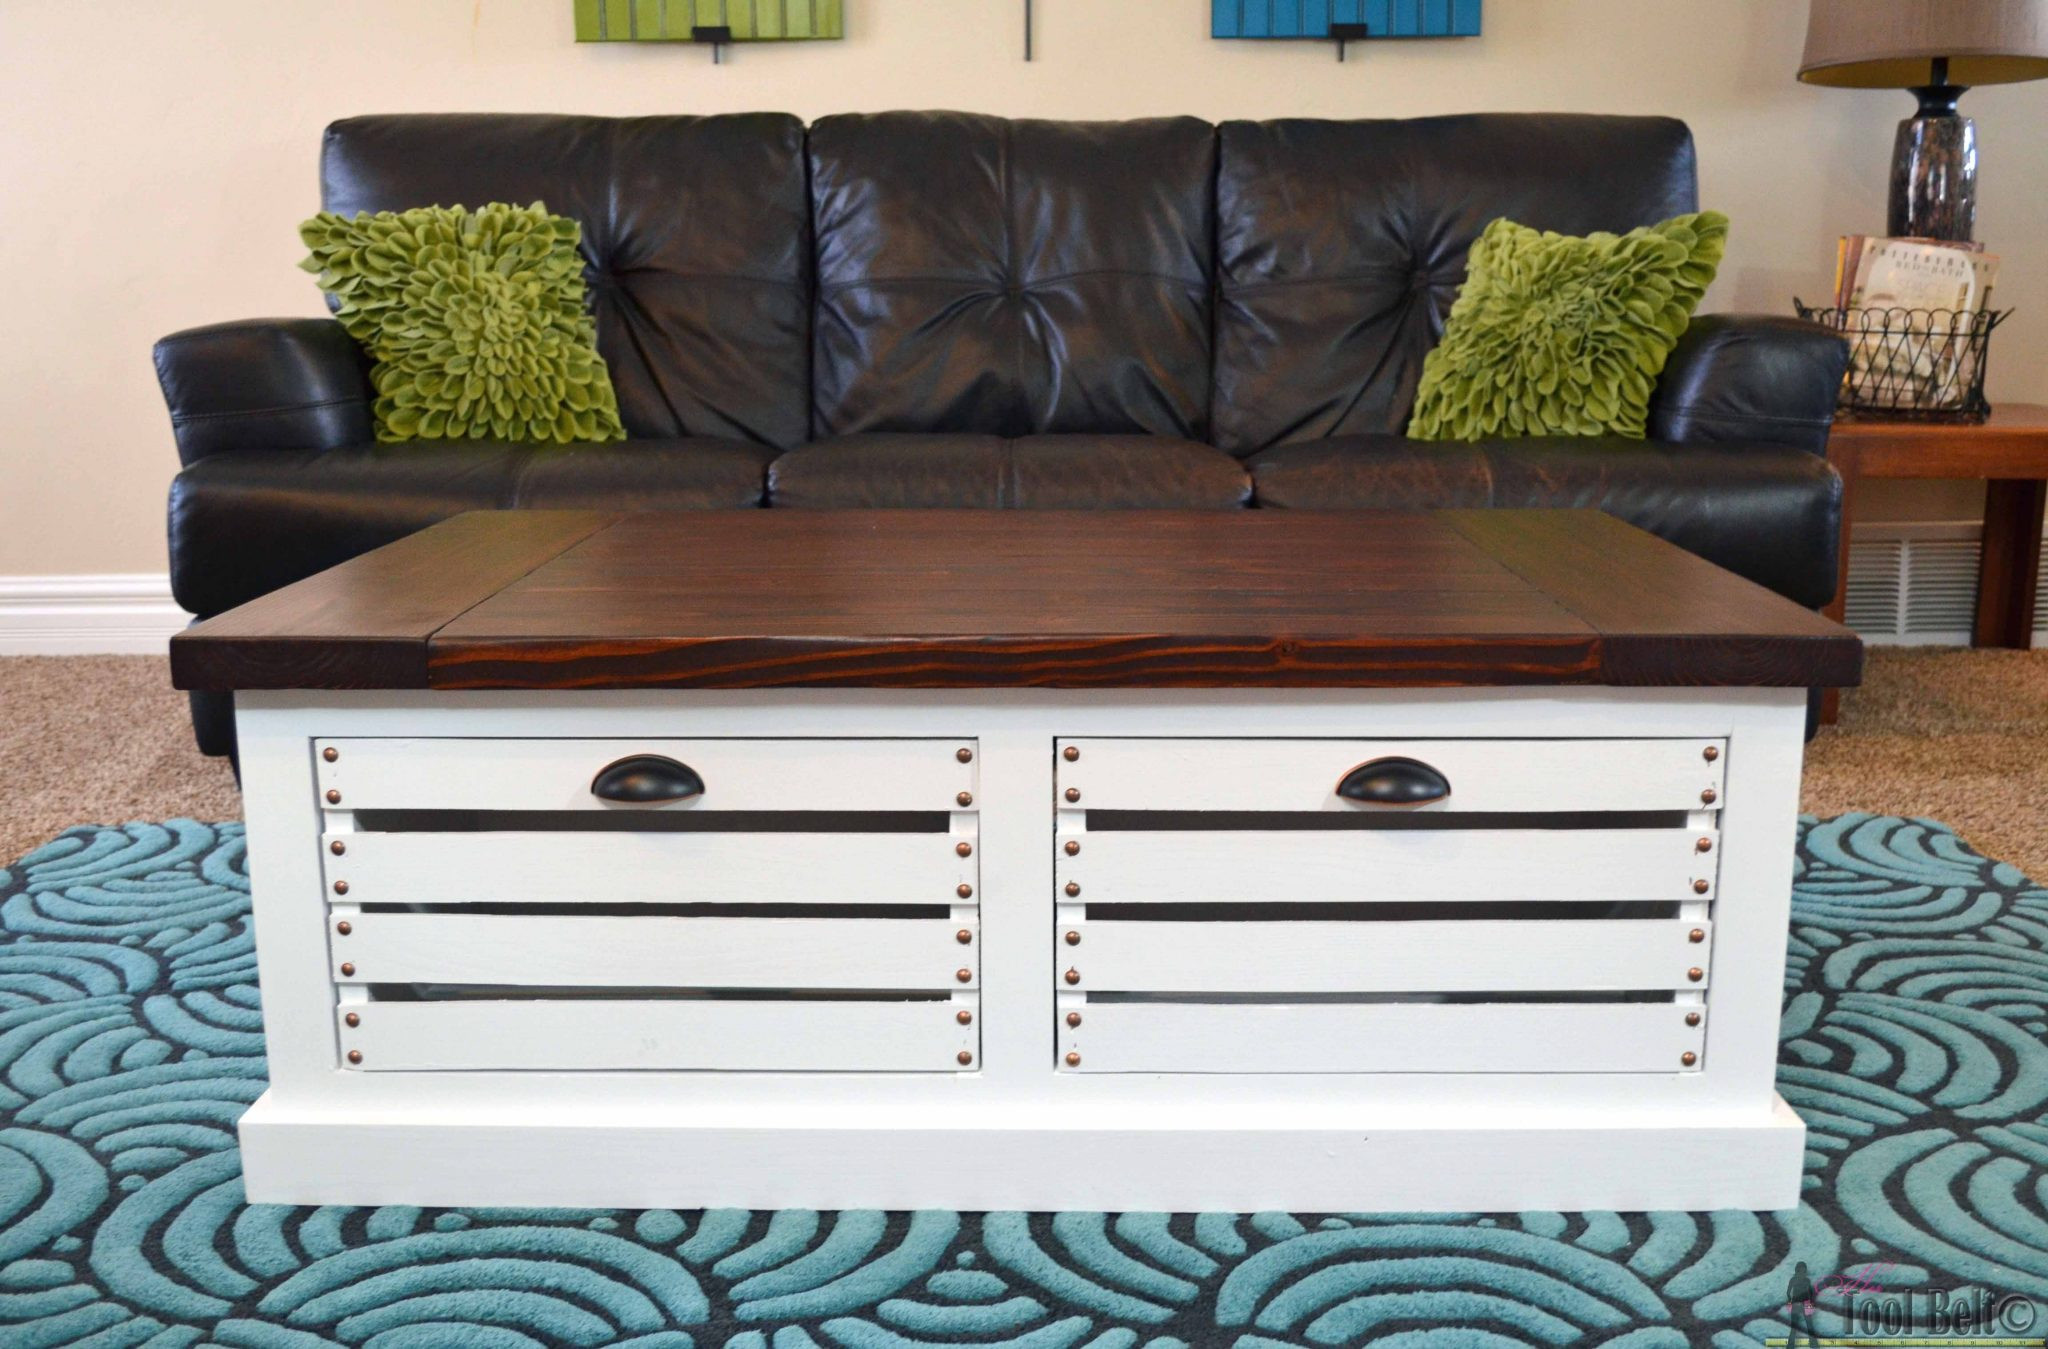 Best ideas about Coffee Table With Storage . Save or Pin Crate Storage Coffee Table and Stools Her Tool Belt Now.